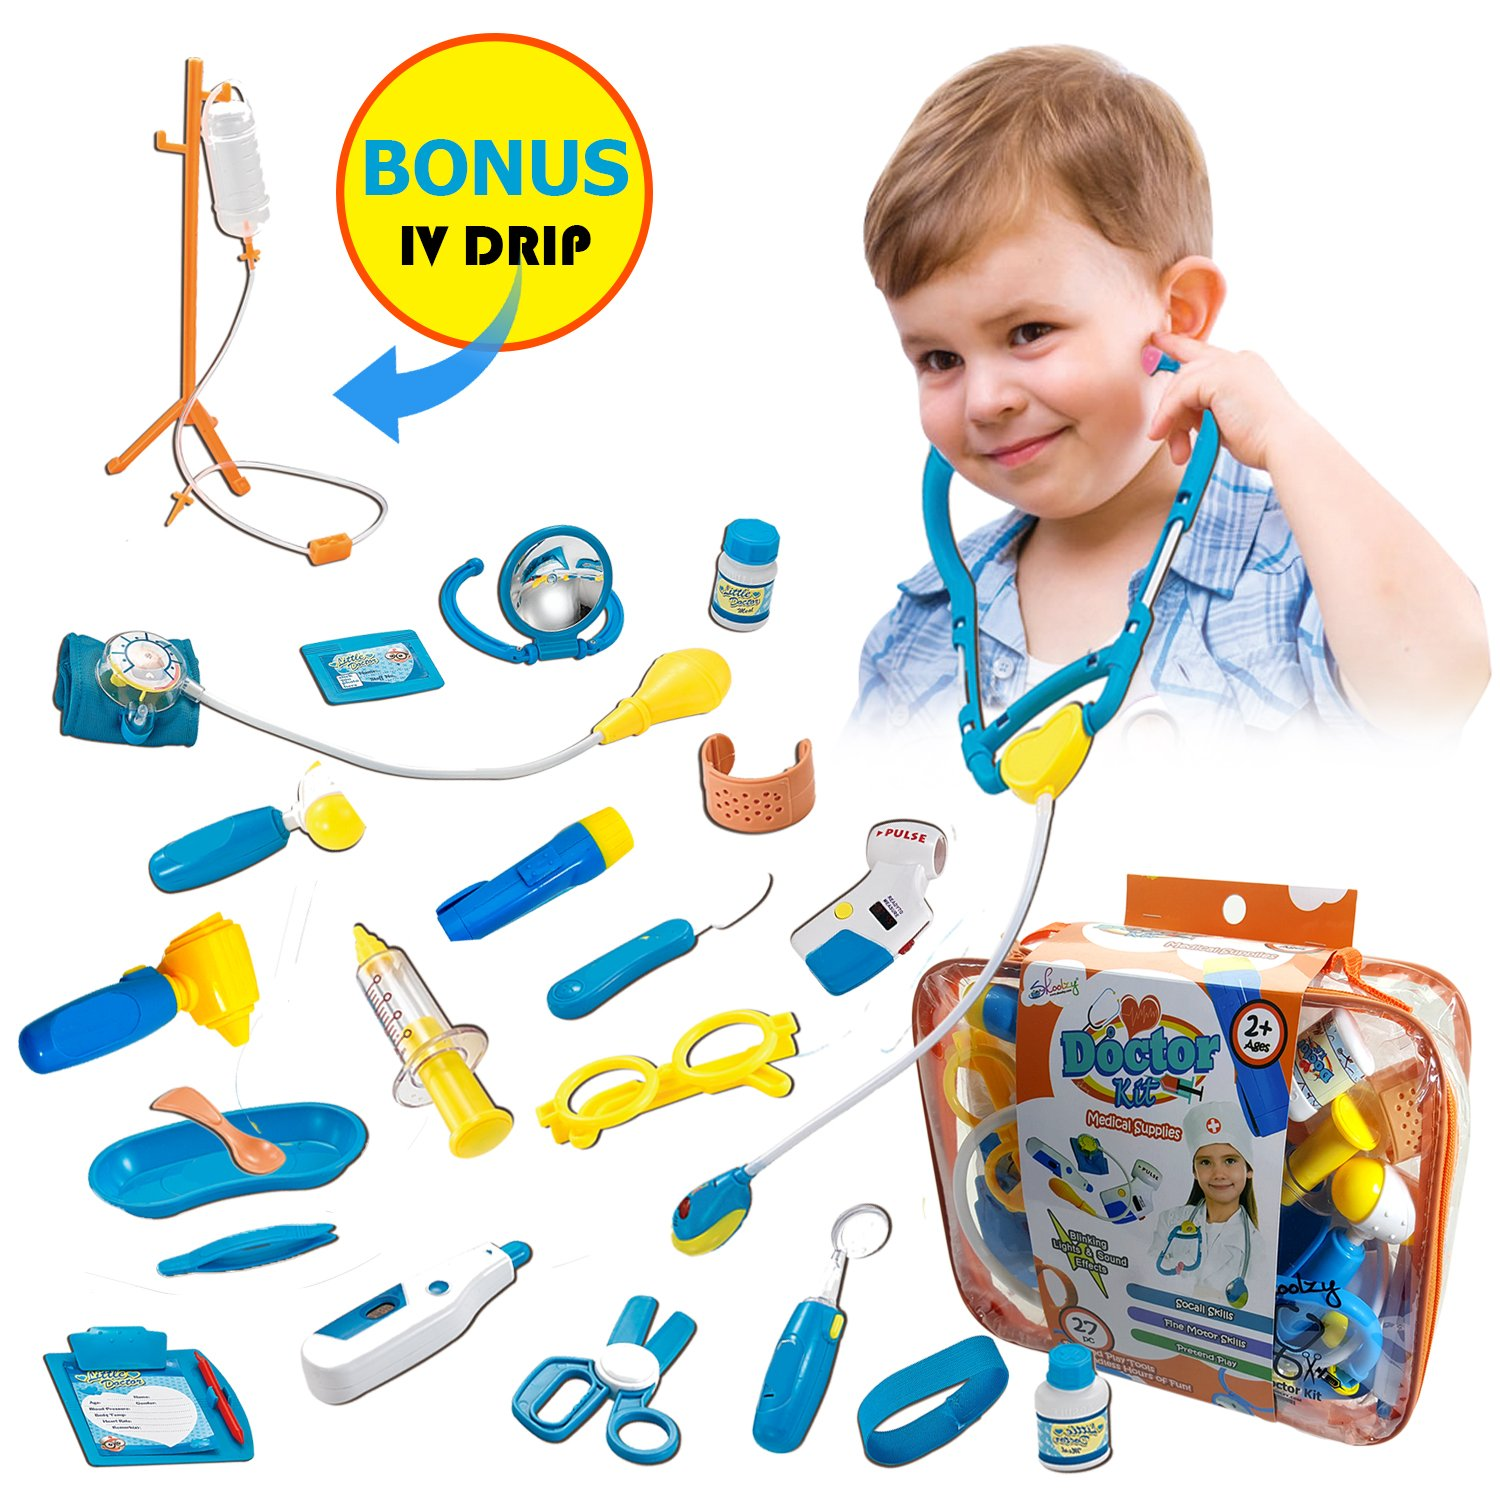 Amazon Medical Kits Toys & Games